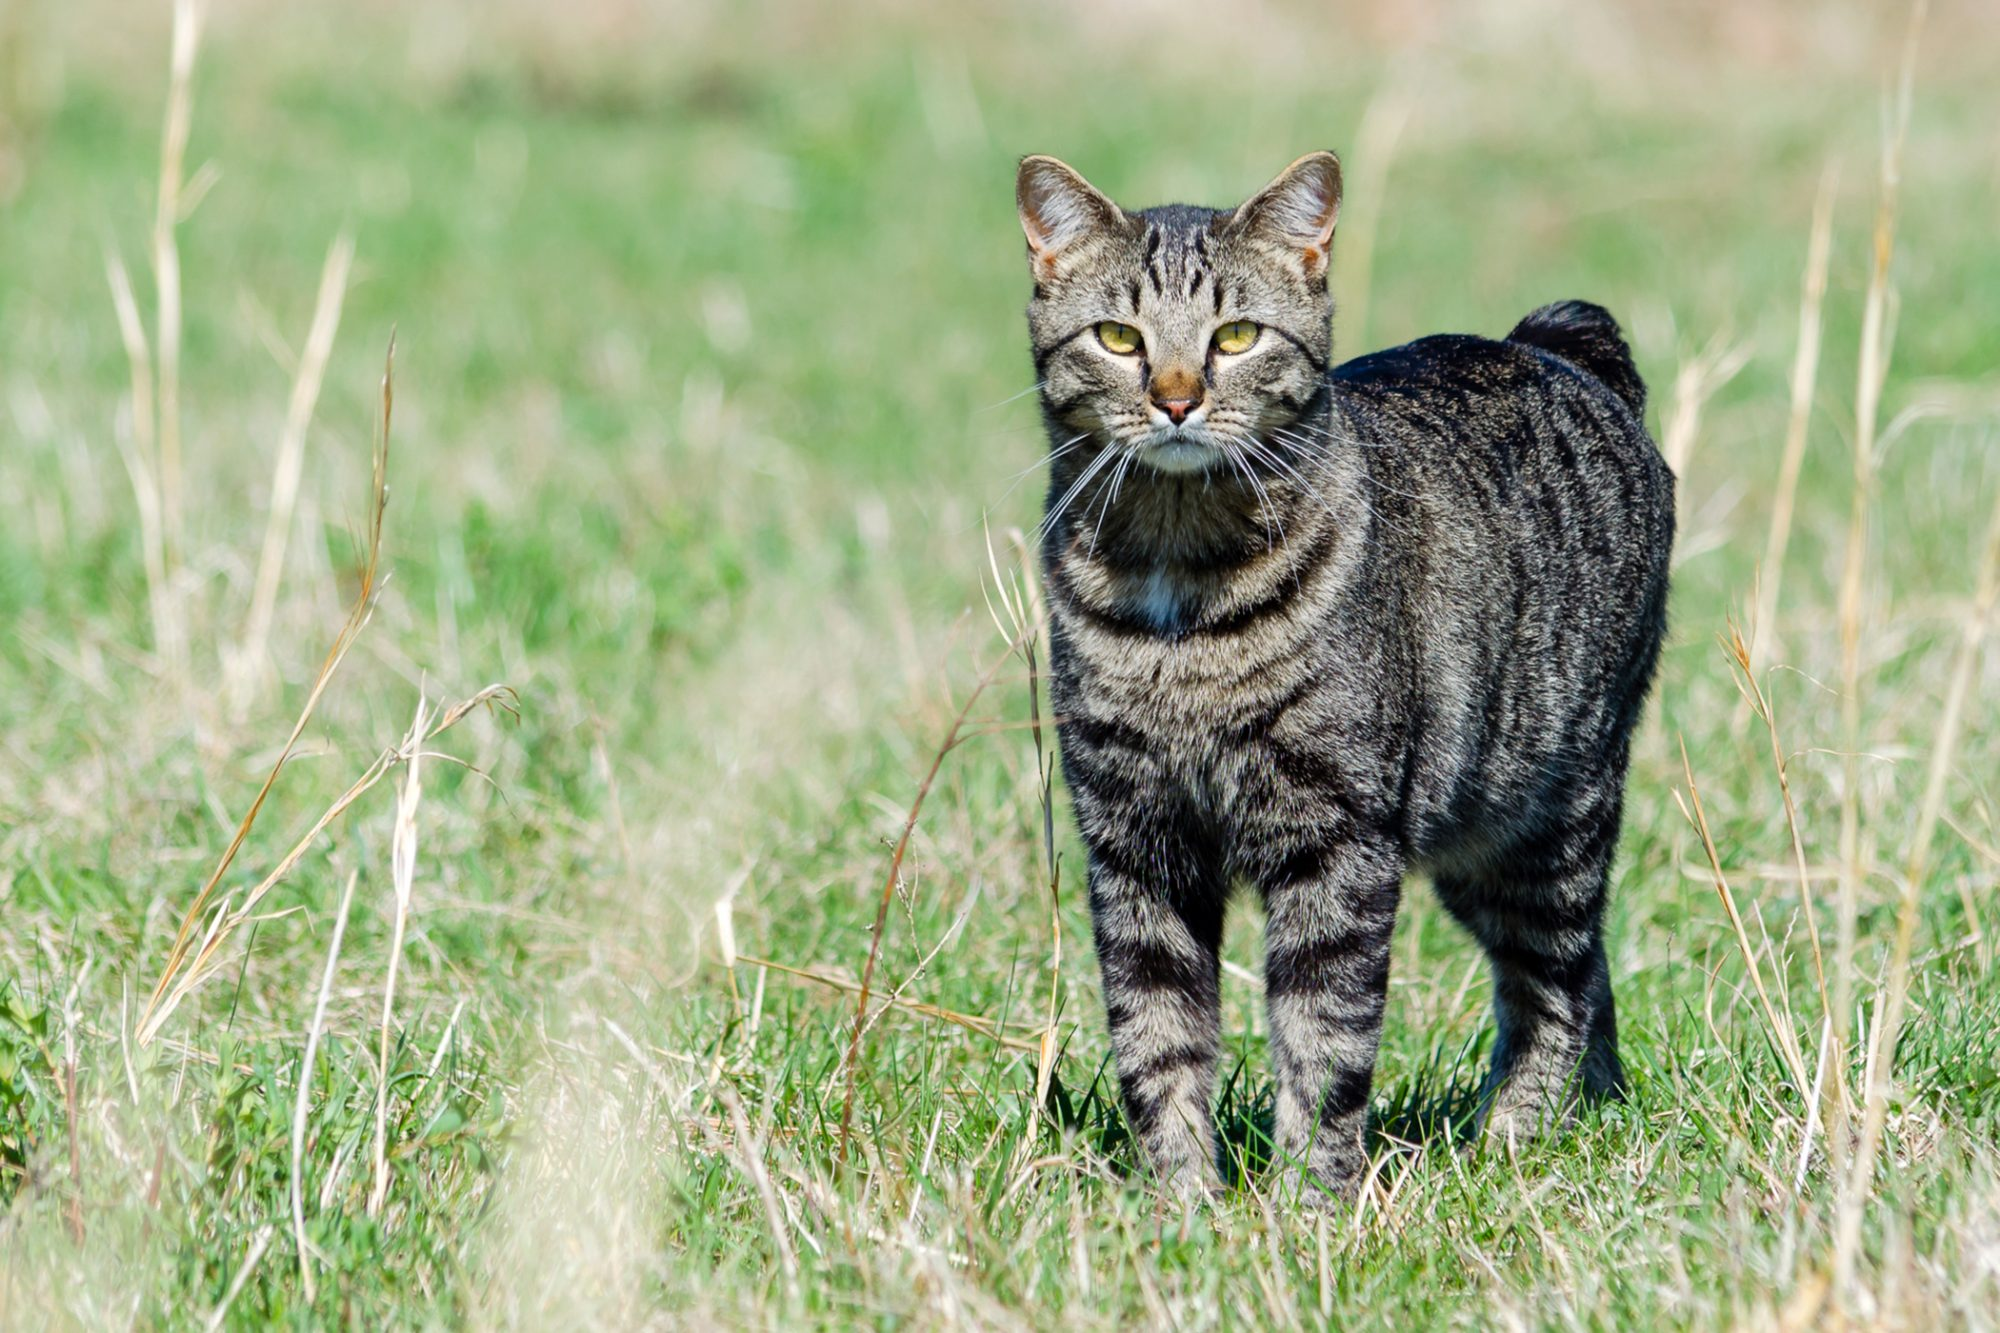 manx cat standing in field